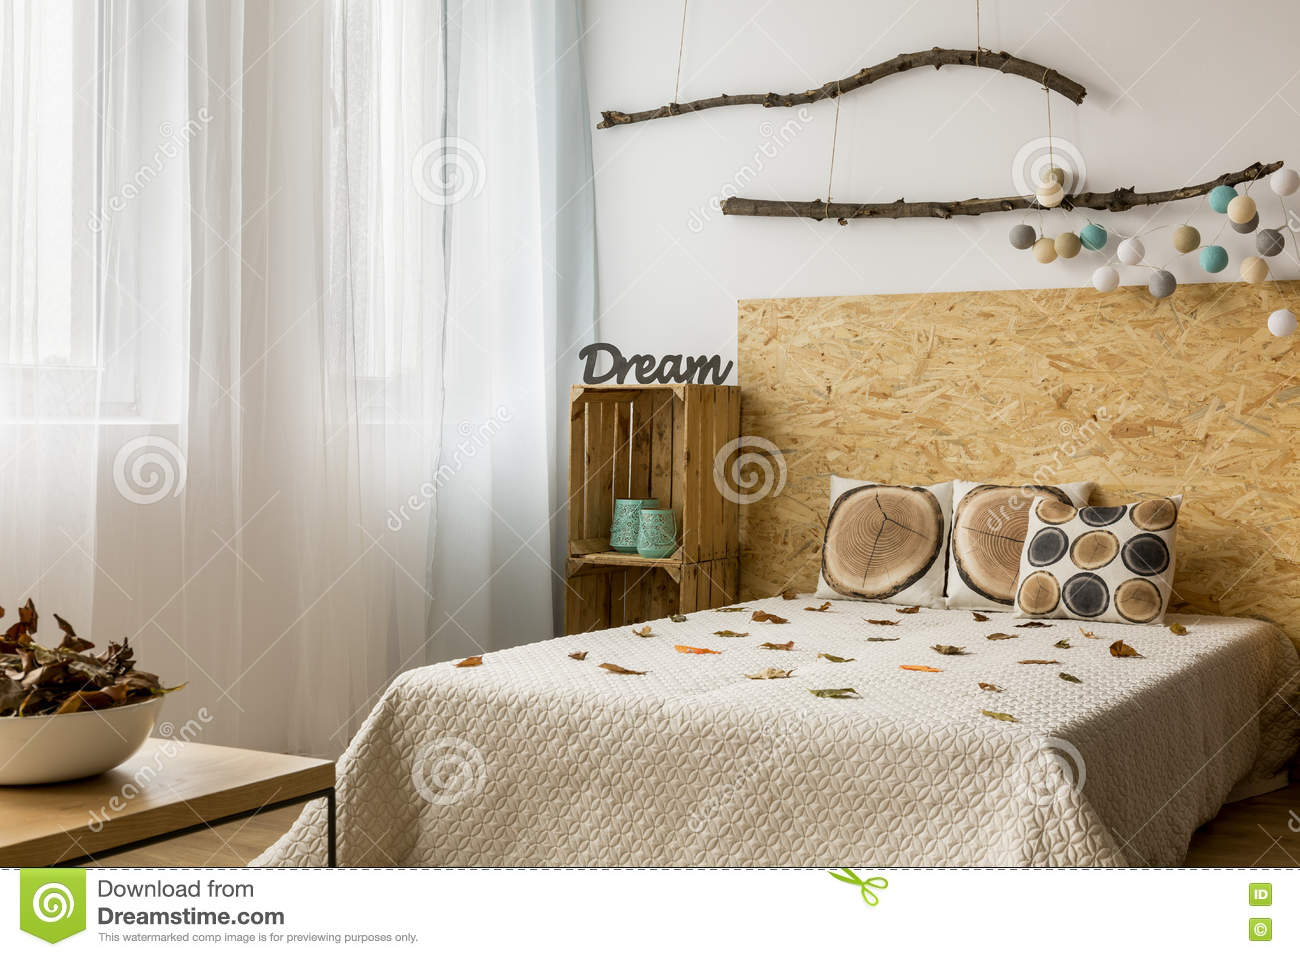 creative diy home decor in eco style stock image image of